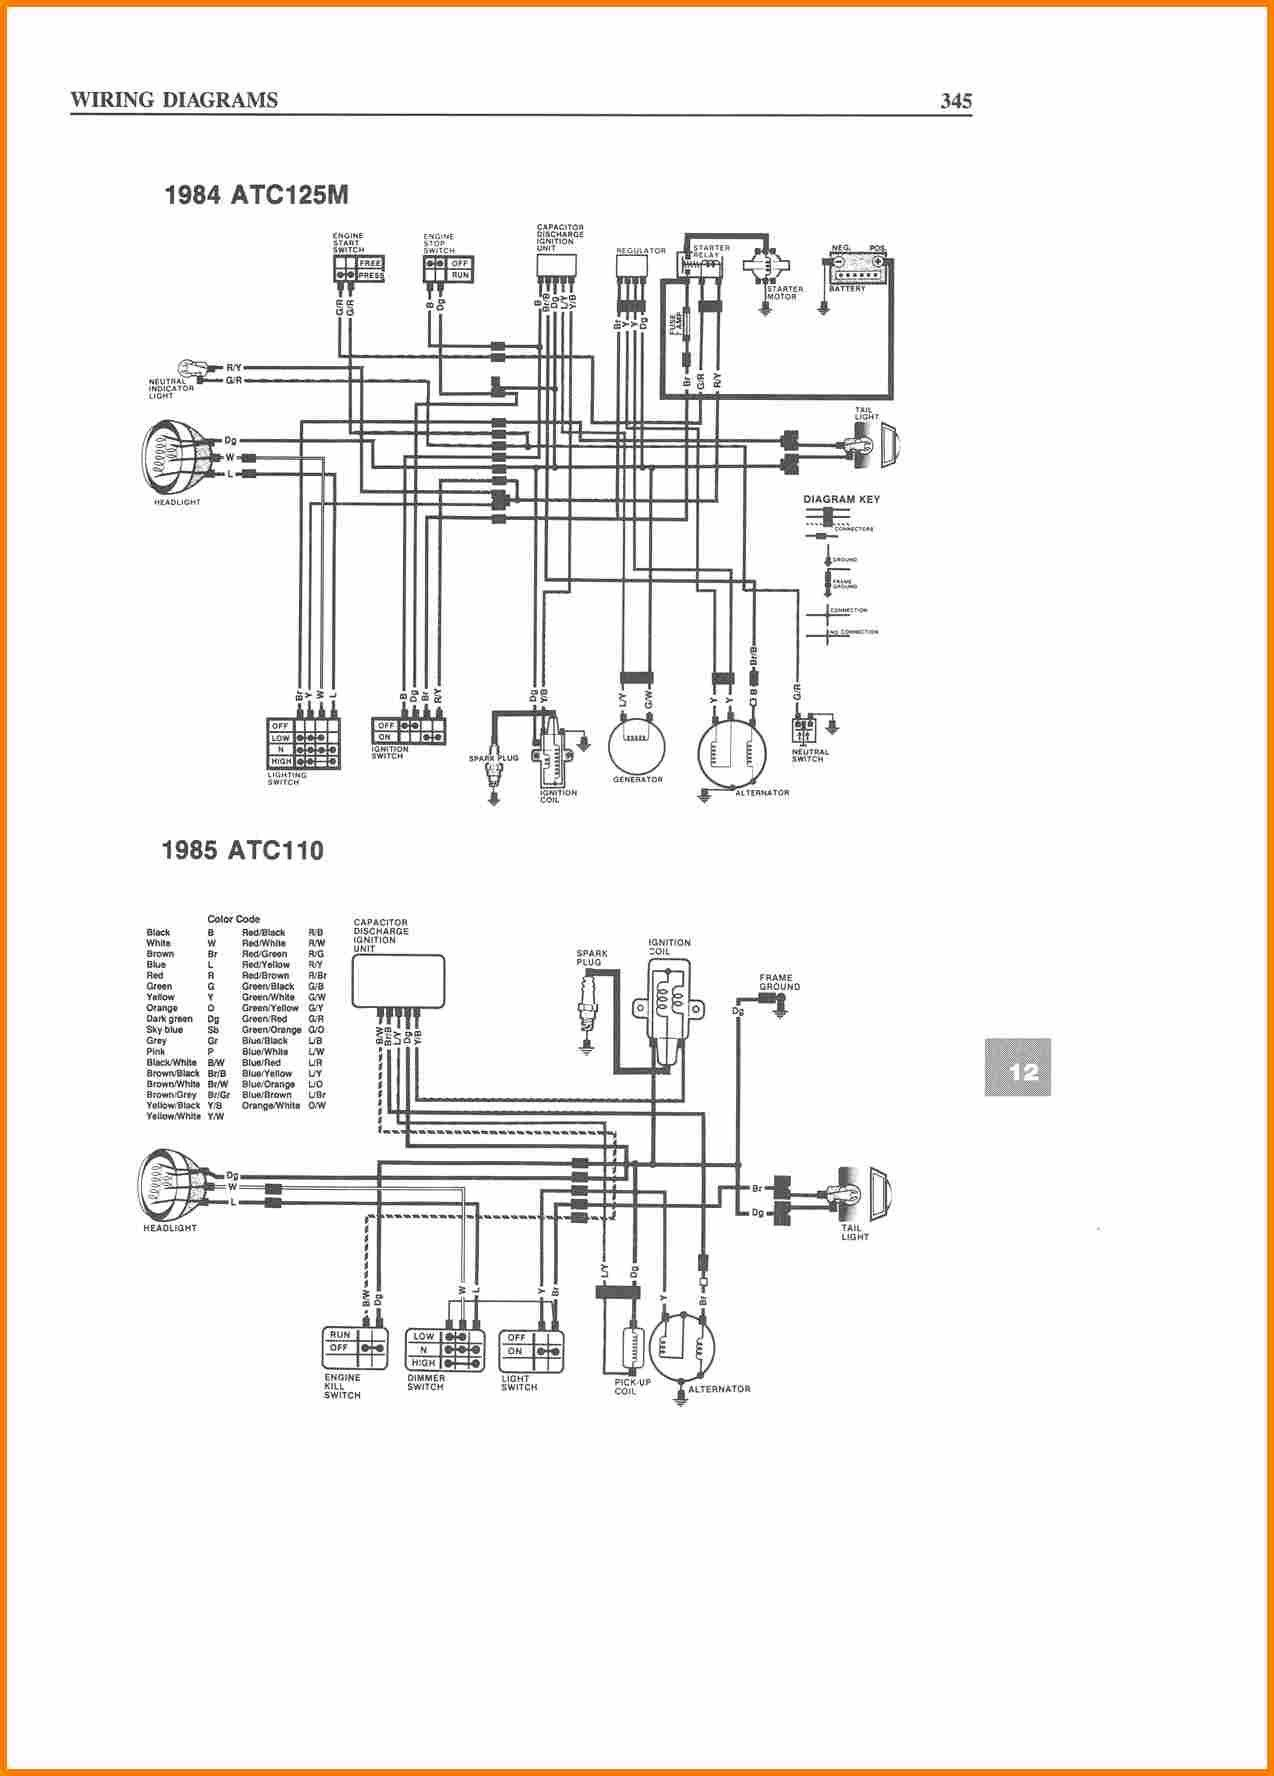 kymco engine diagram wiring diagram split kymco 50cc scooter wire diagram wiring diagram meta 50cc scooter [ 1274 x 1776 Pixel ]